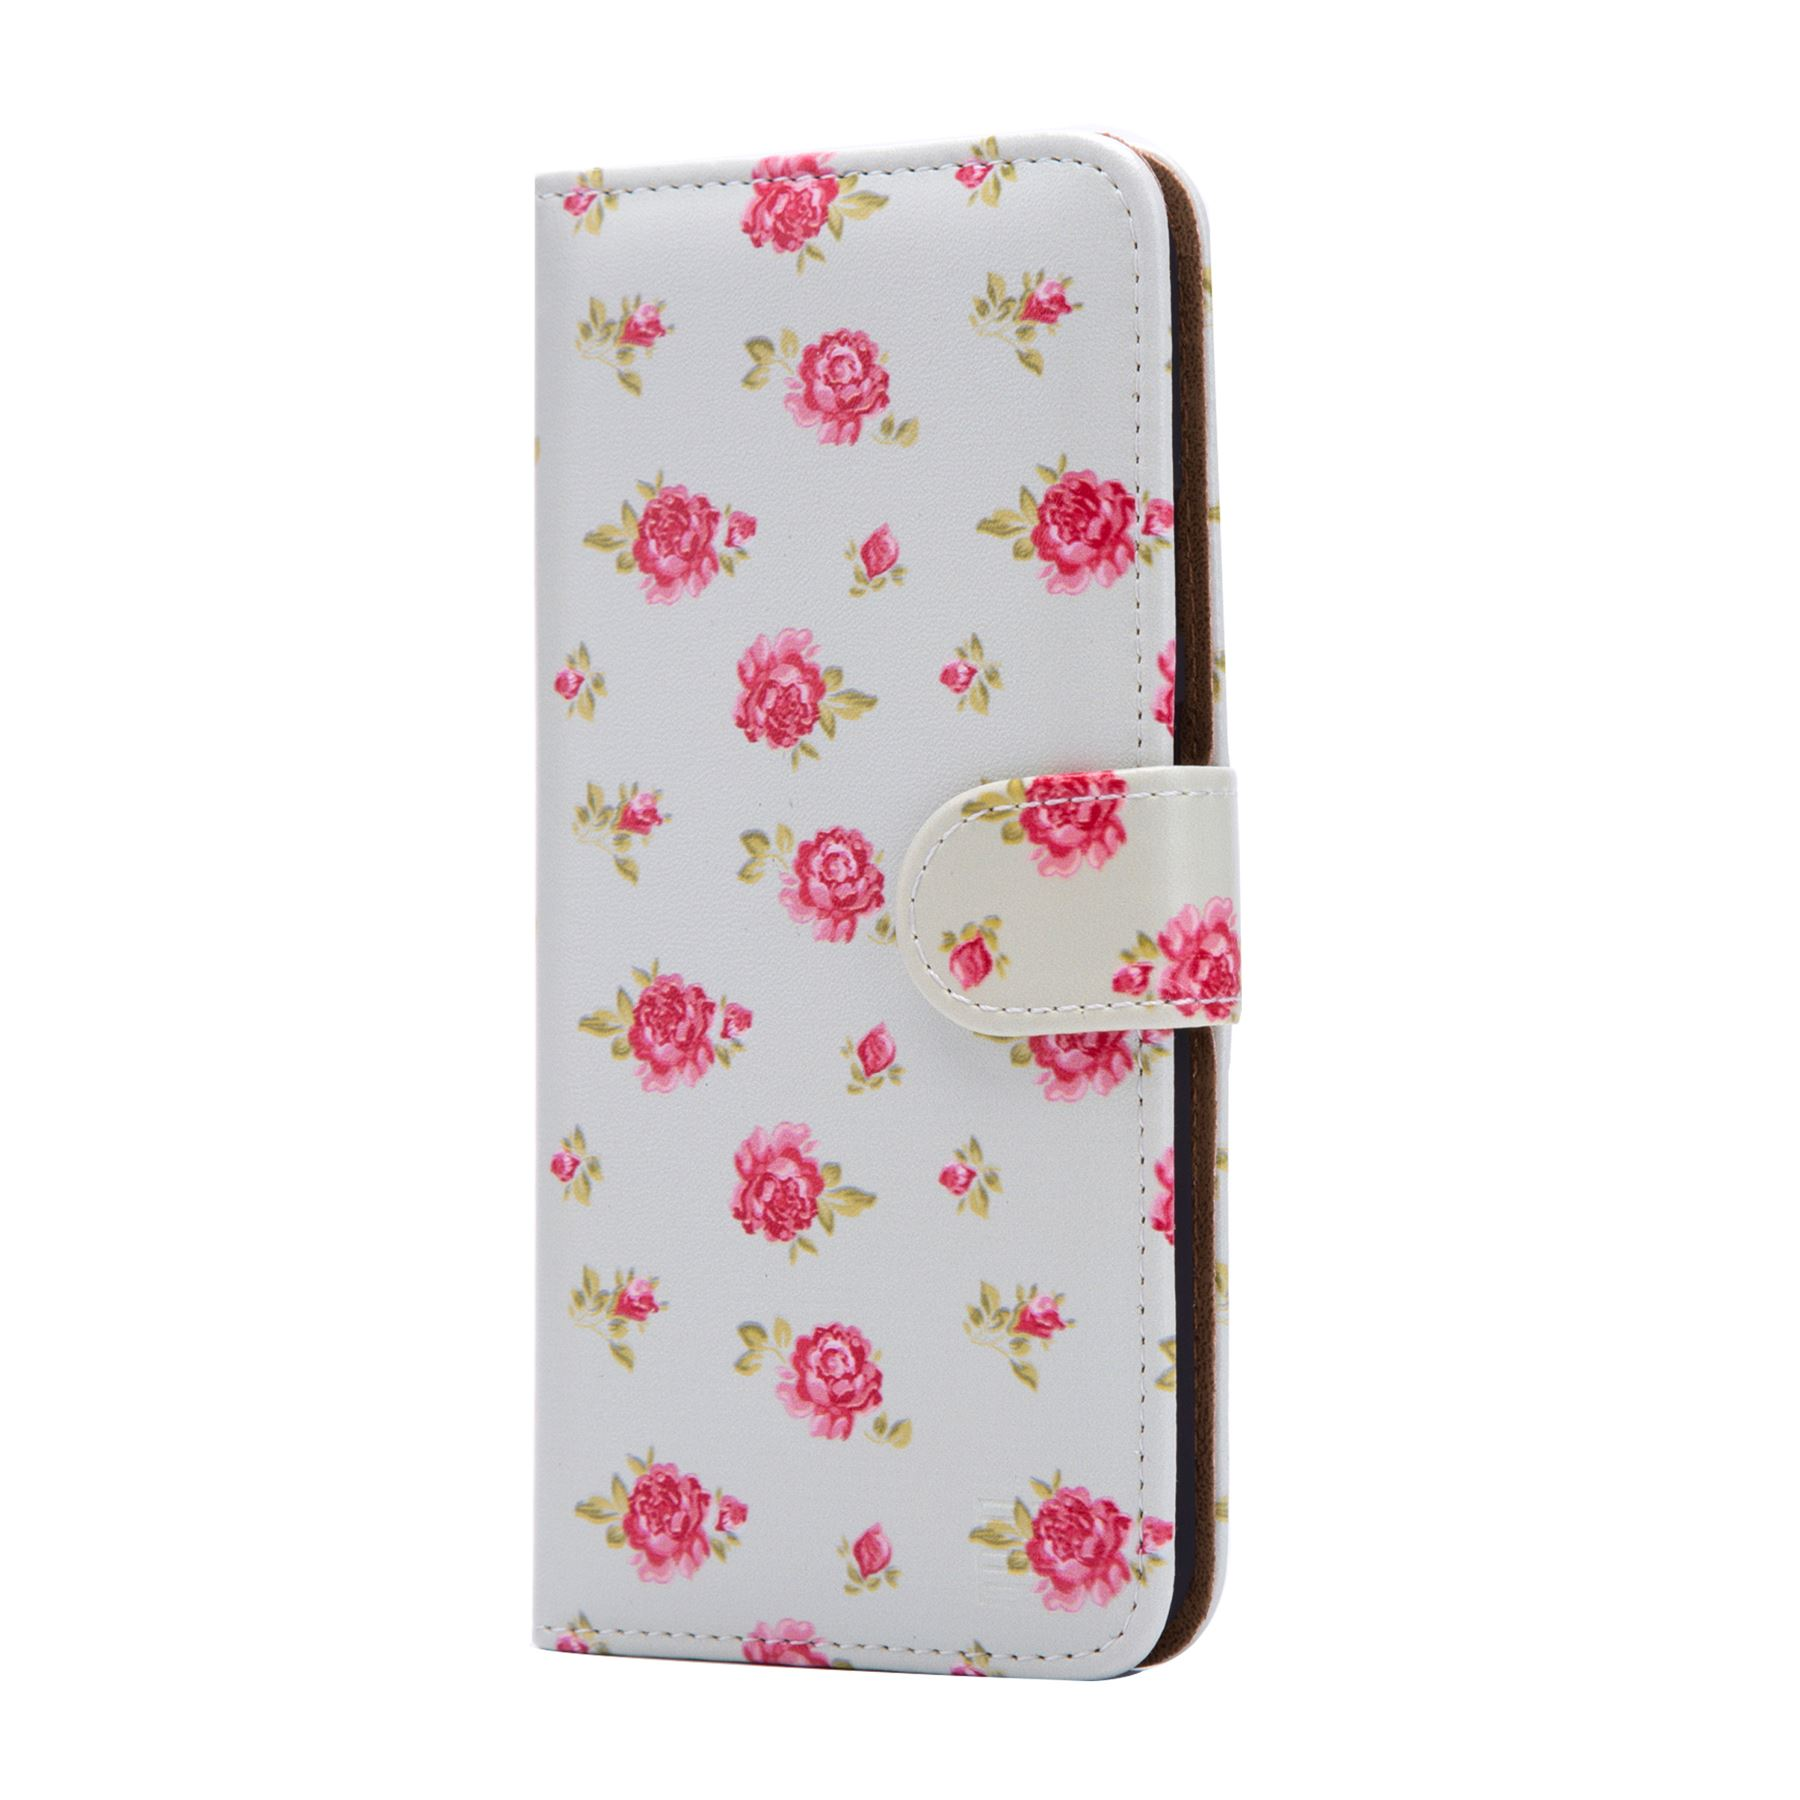 PU-Leather-Floral-Design-Book-Wallet-Case-Cover-For-Google-Pixel thumbnail 50